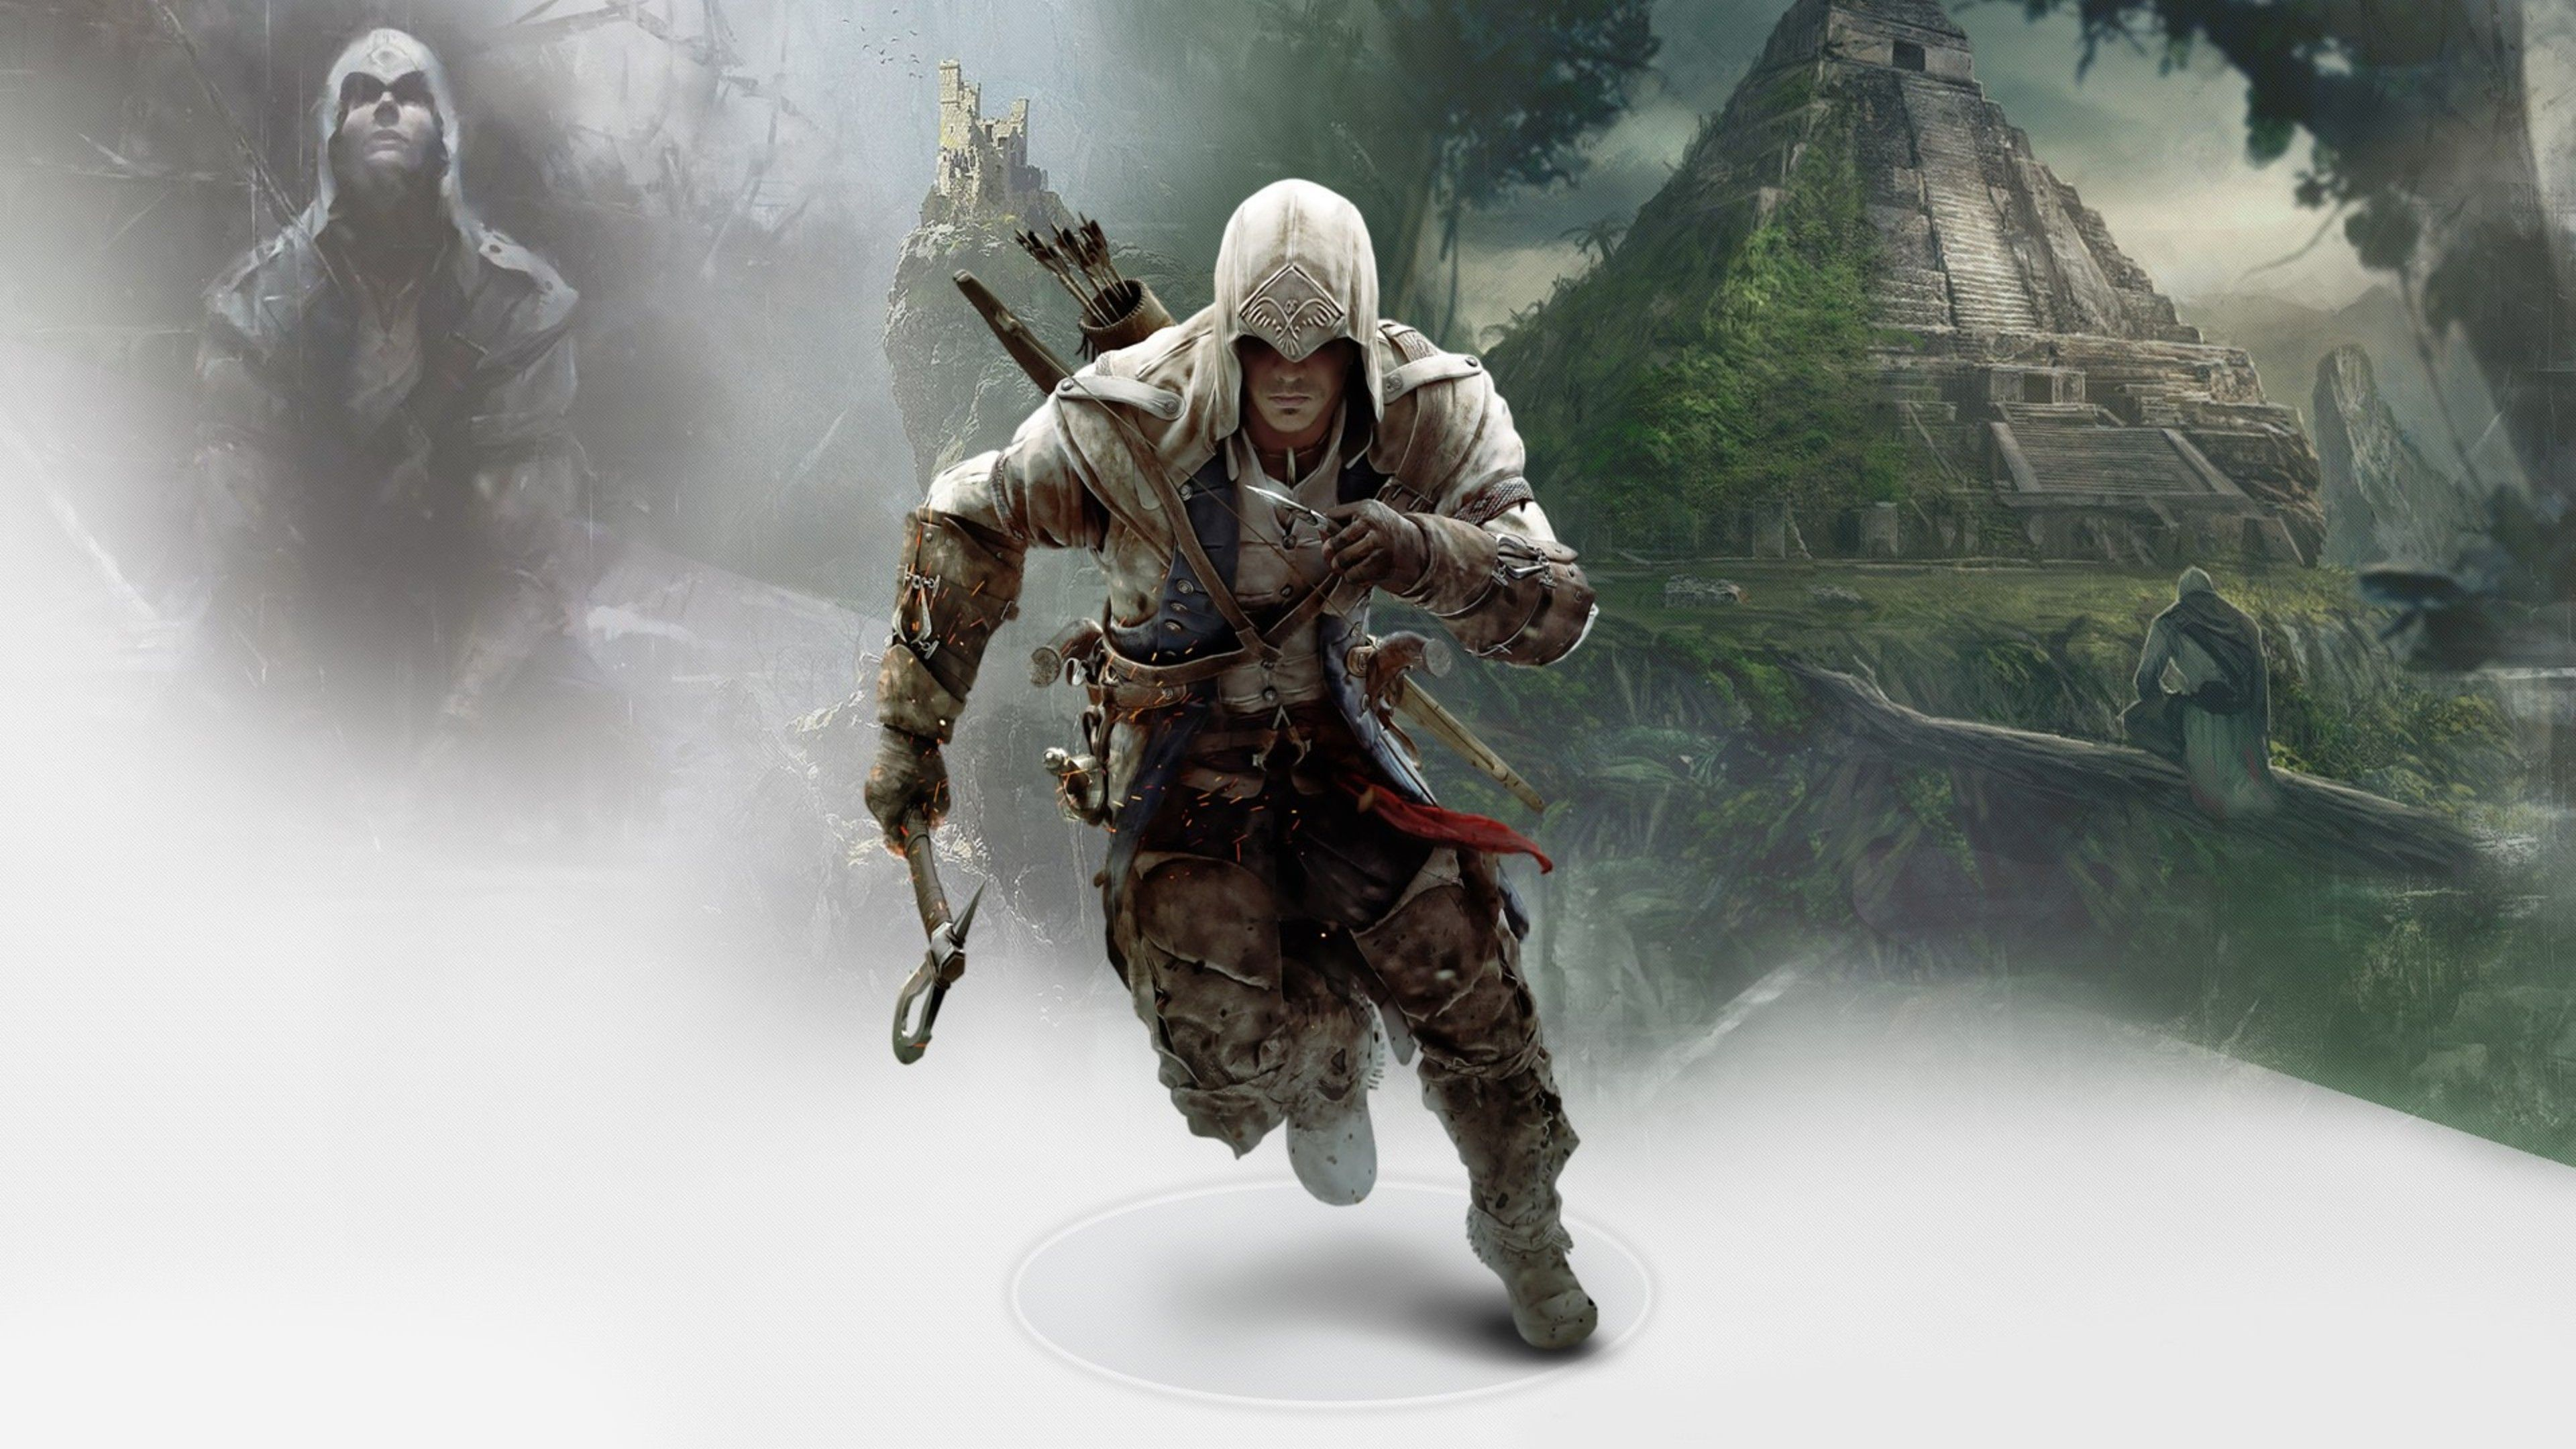 Connor In Assassins Creed 3 4k 4k Hd Wallpapers Assassins Creed 3 Assassins Creed Assassin S Creed Hd